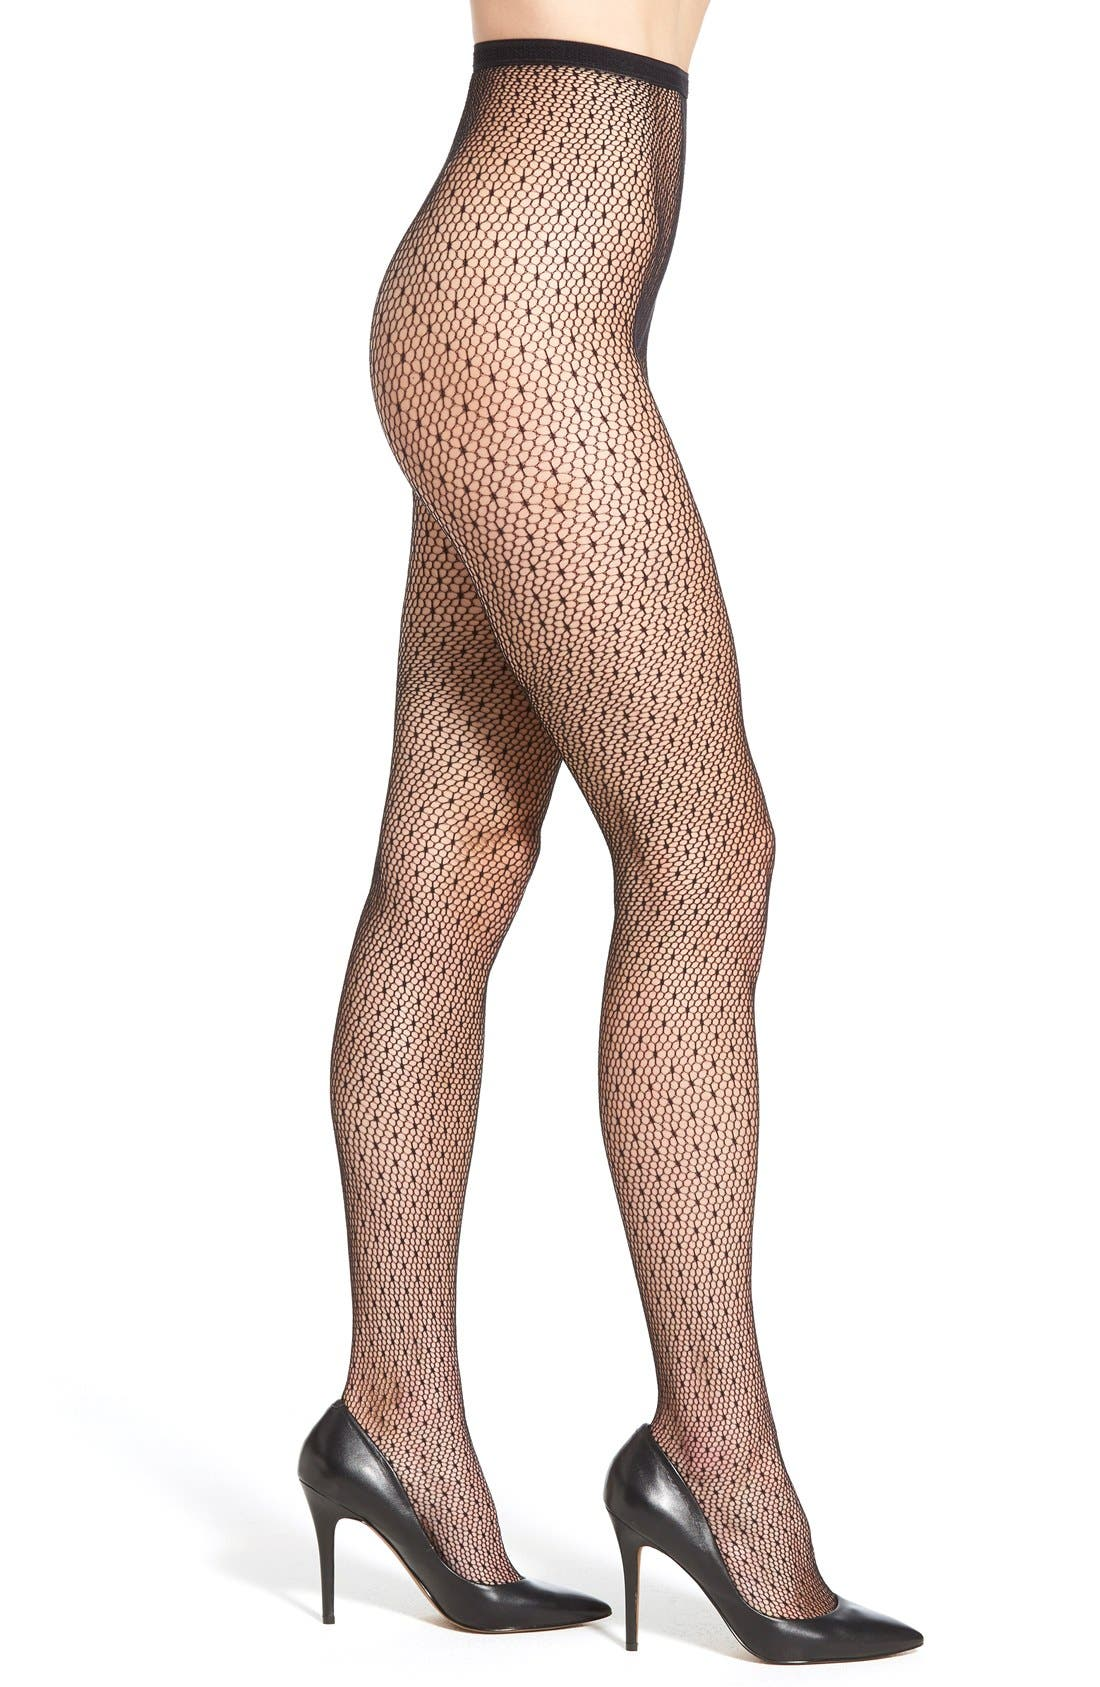 Alternate Image 1 Selected - DKNY 'Spring' Floral Lace Tights